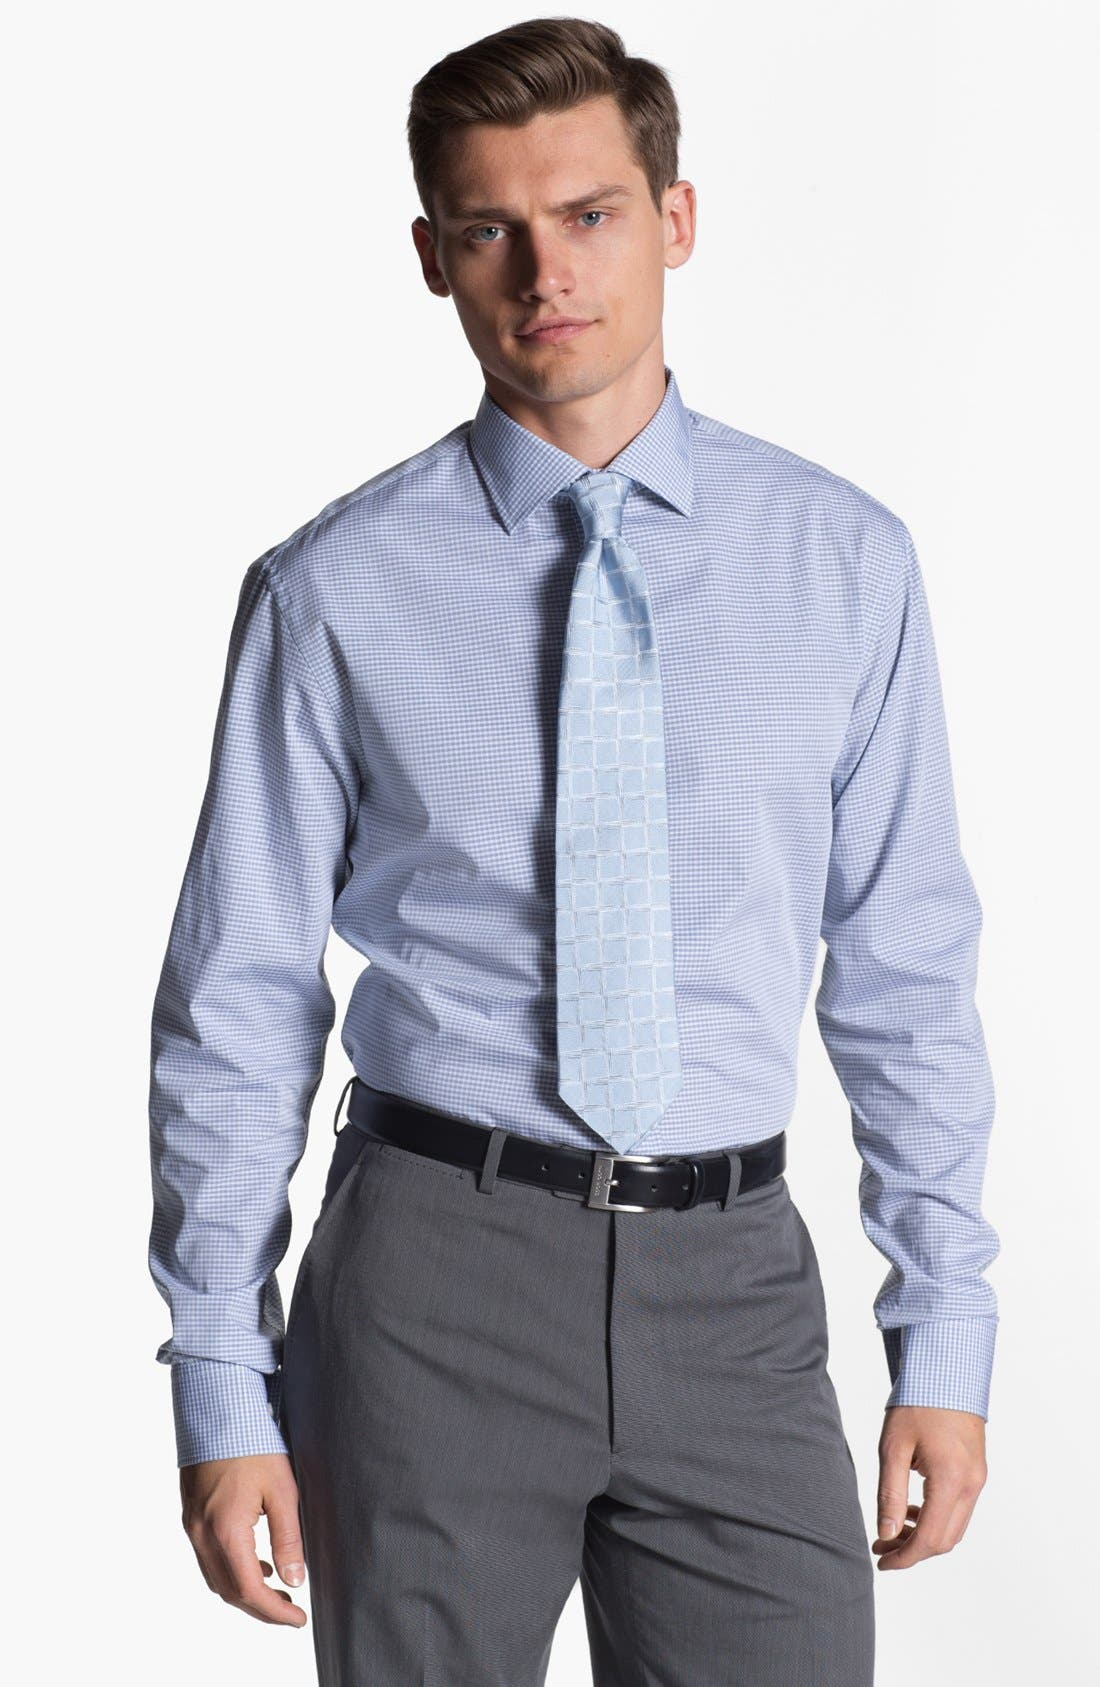 Alternate Image 1 Selected - Armani Collezioni Trim Fit Check Cotton Dress Shirt